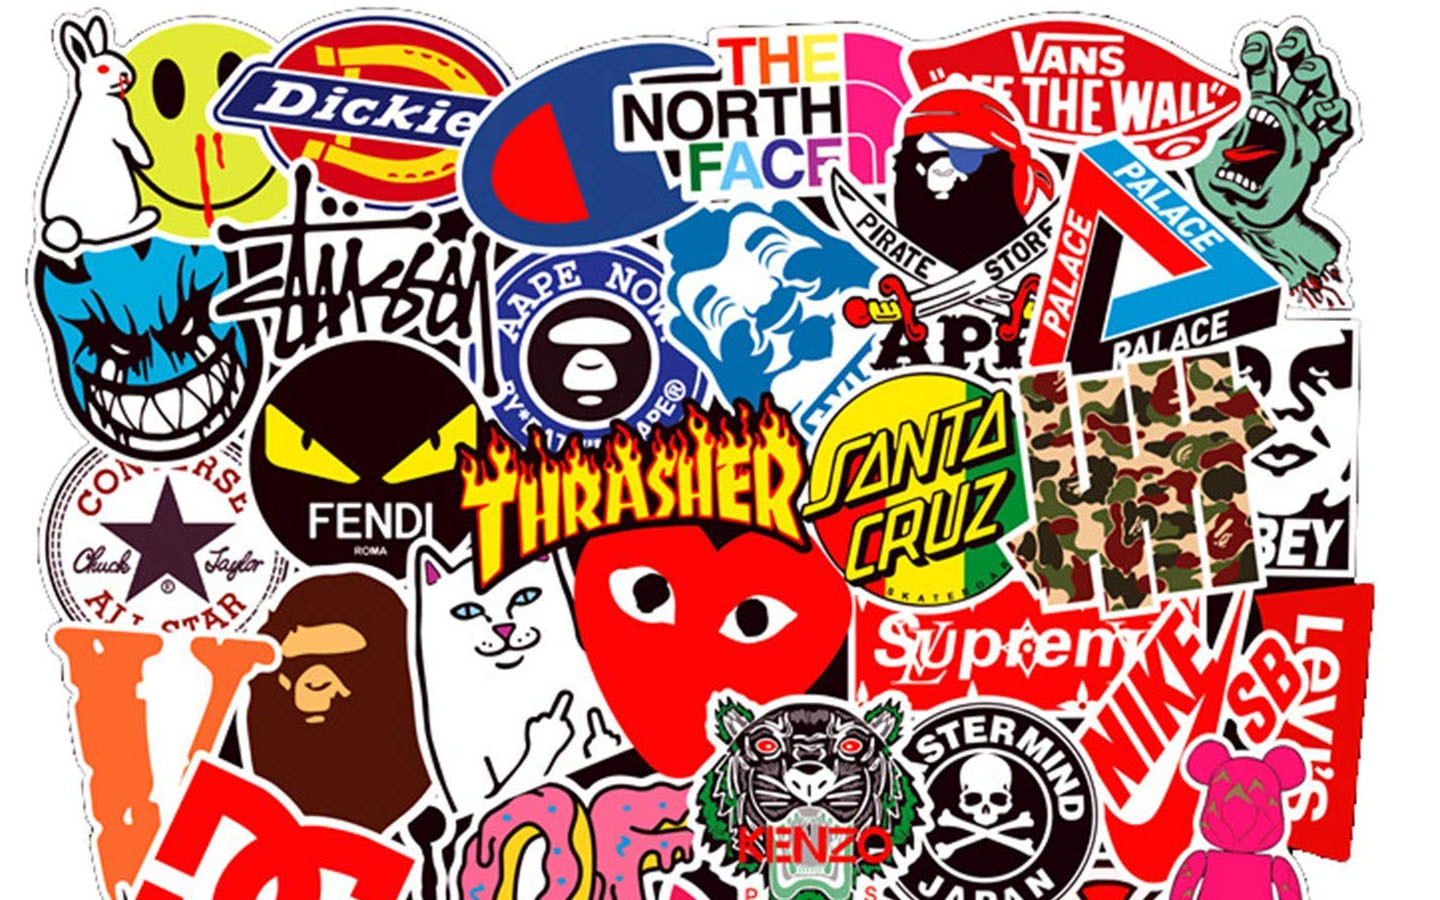 Cutomized Sticker Design and Printing